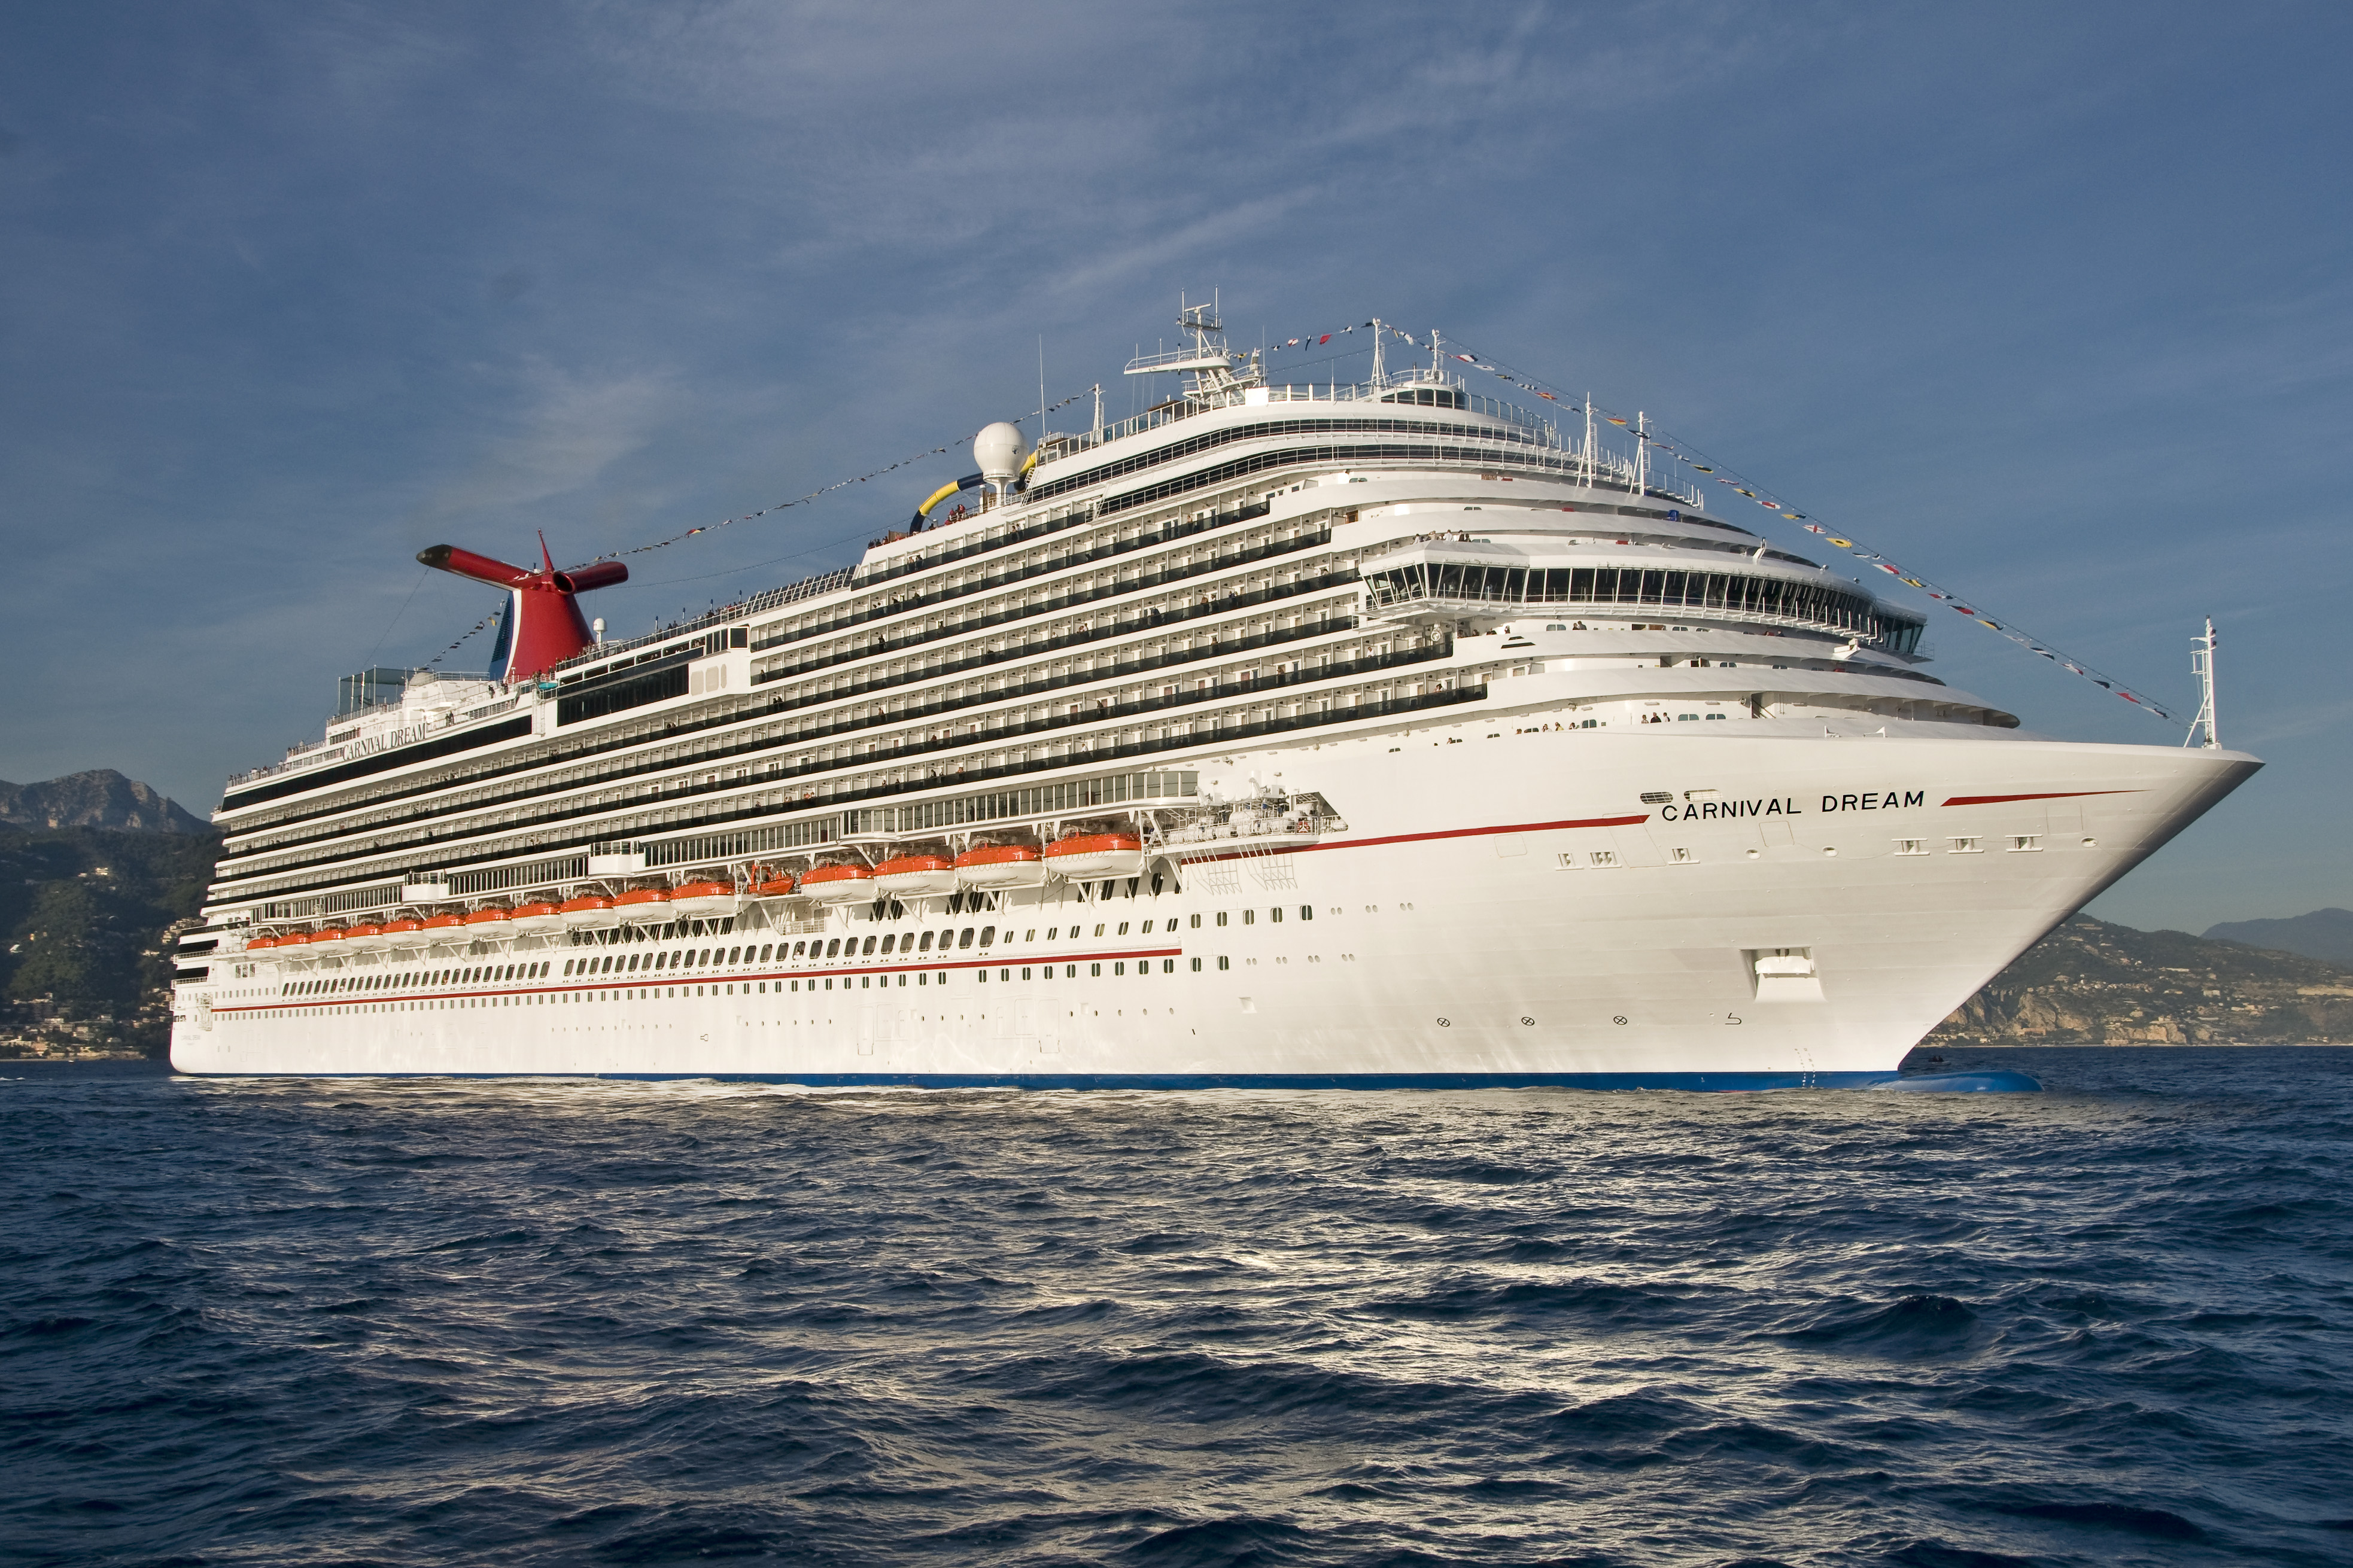 Carnival Cruise Line News - Cruise ship schedule port canaveral